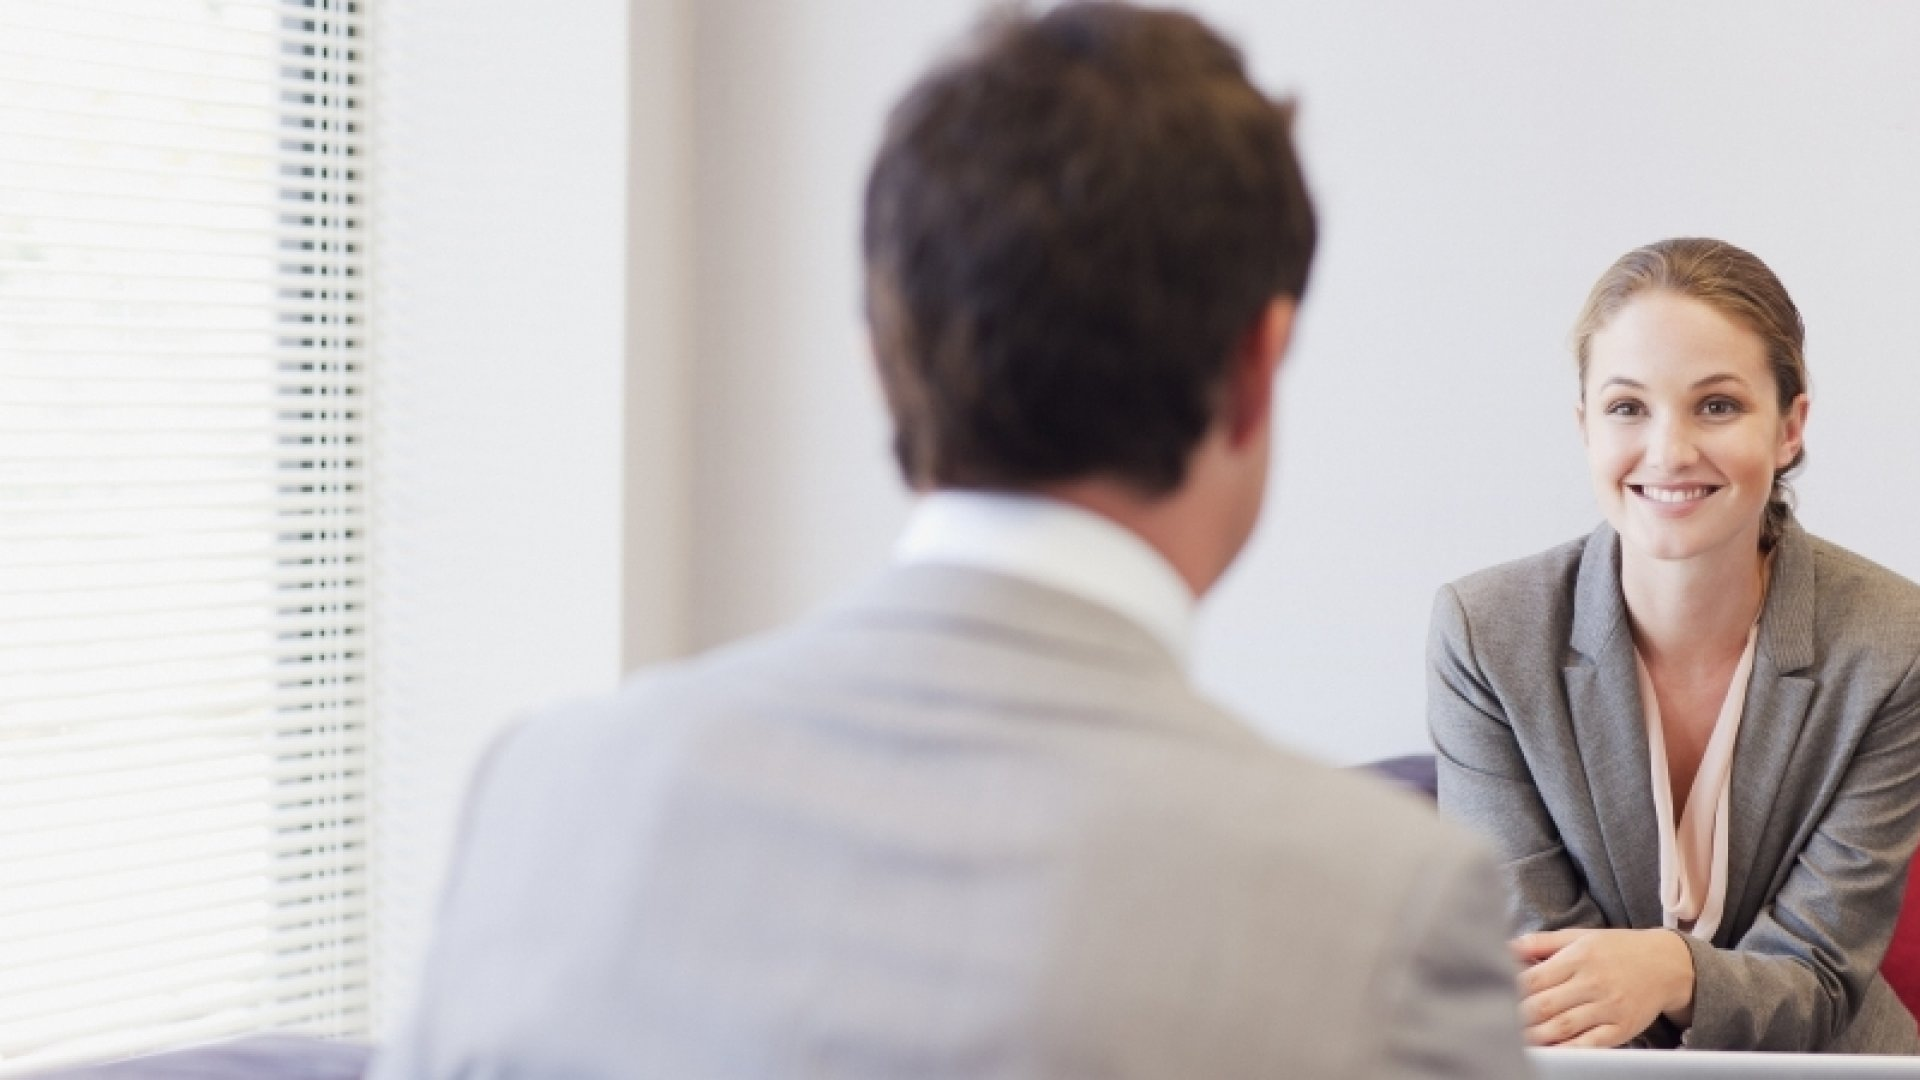 Introverts, Extroverts, and the Job Interview: How to Hire a Fair, Balanced Team